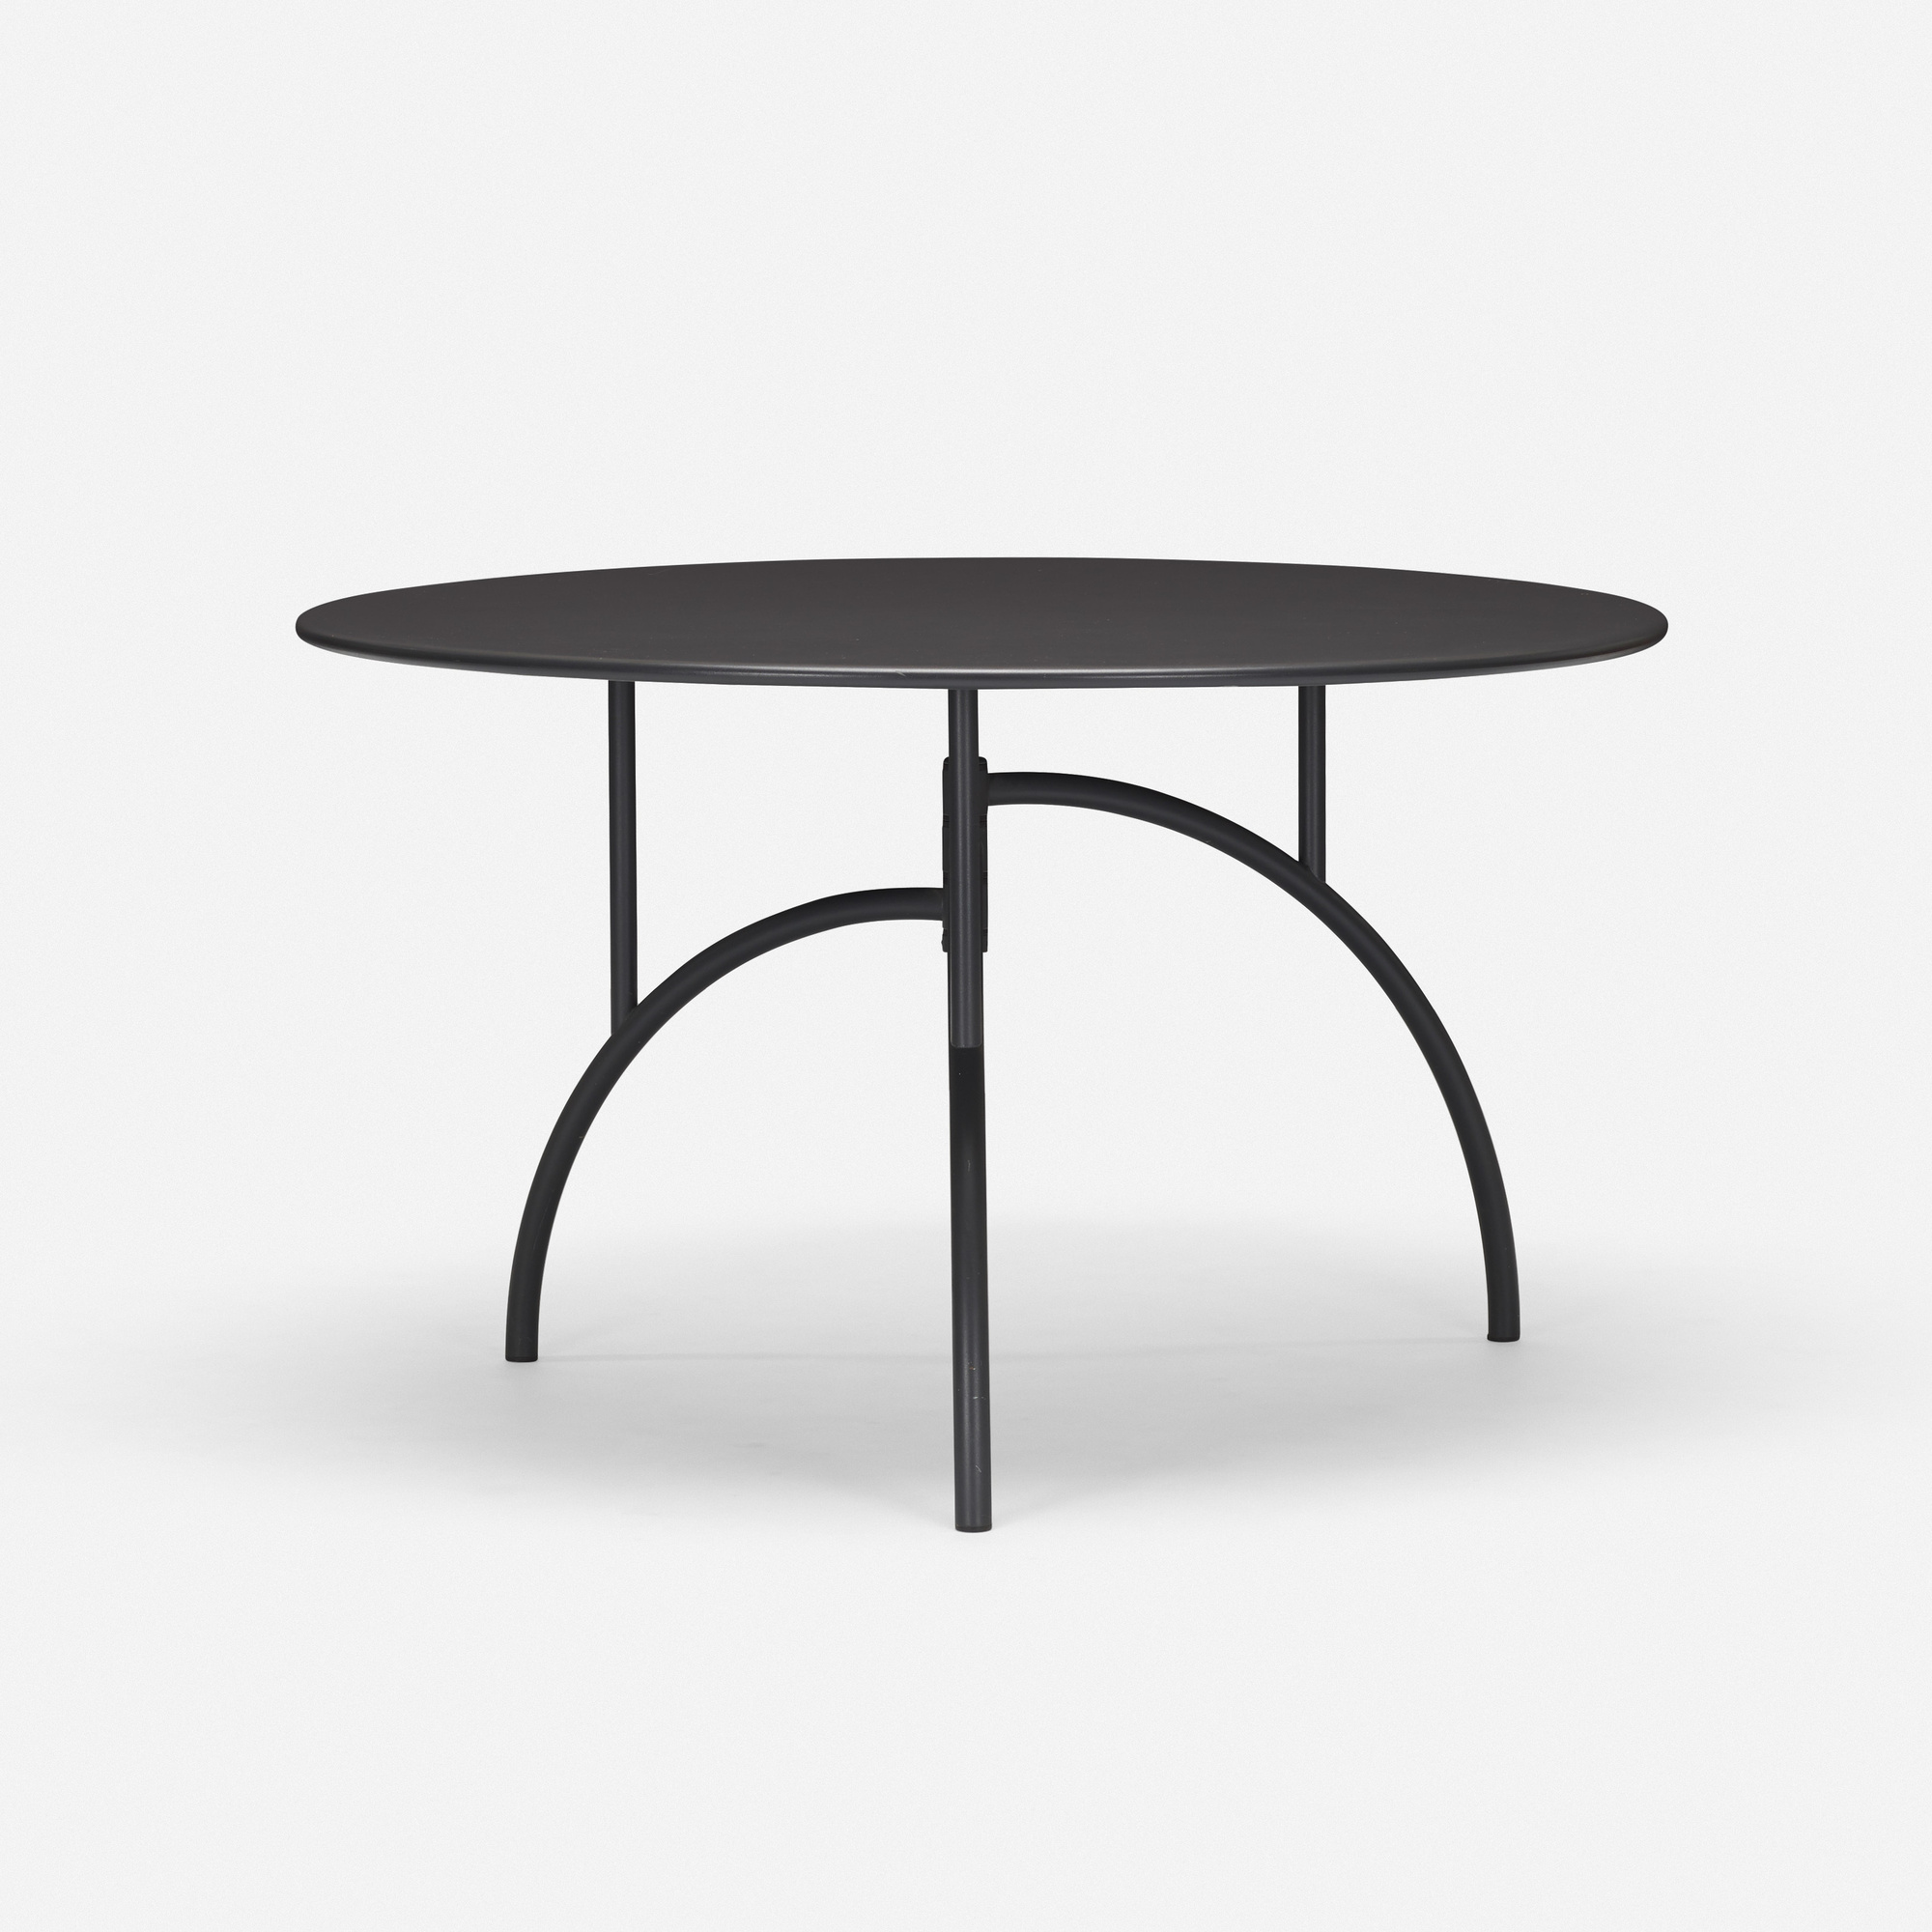 208 philippe starck tippy jackson dining table for Philippe starck dining tables